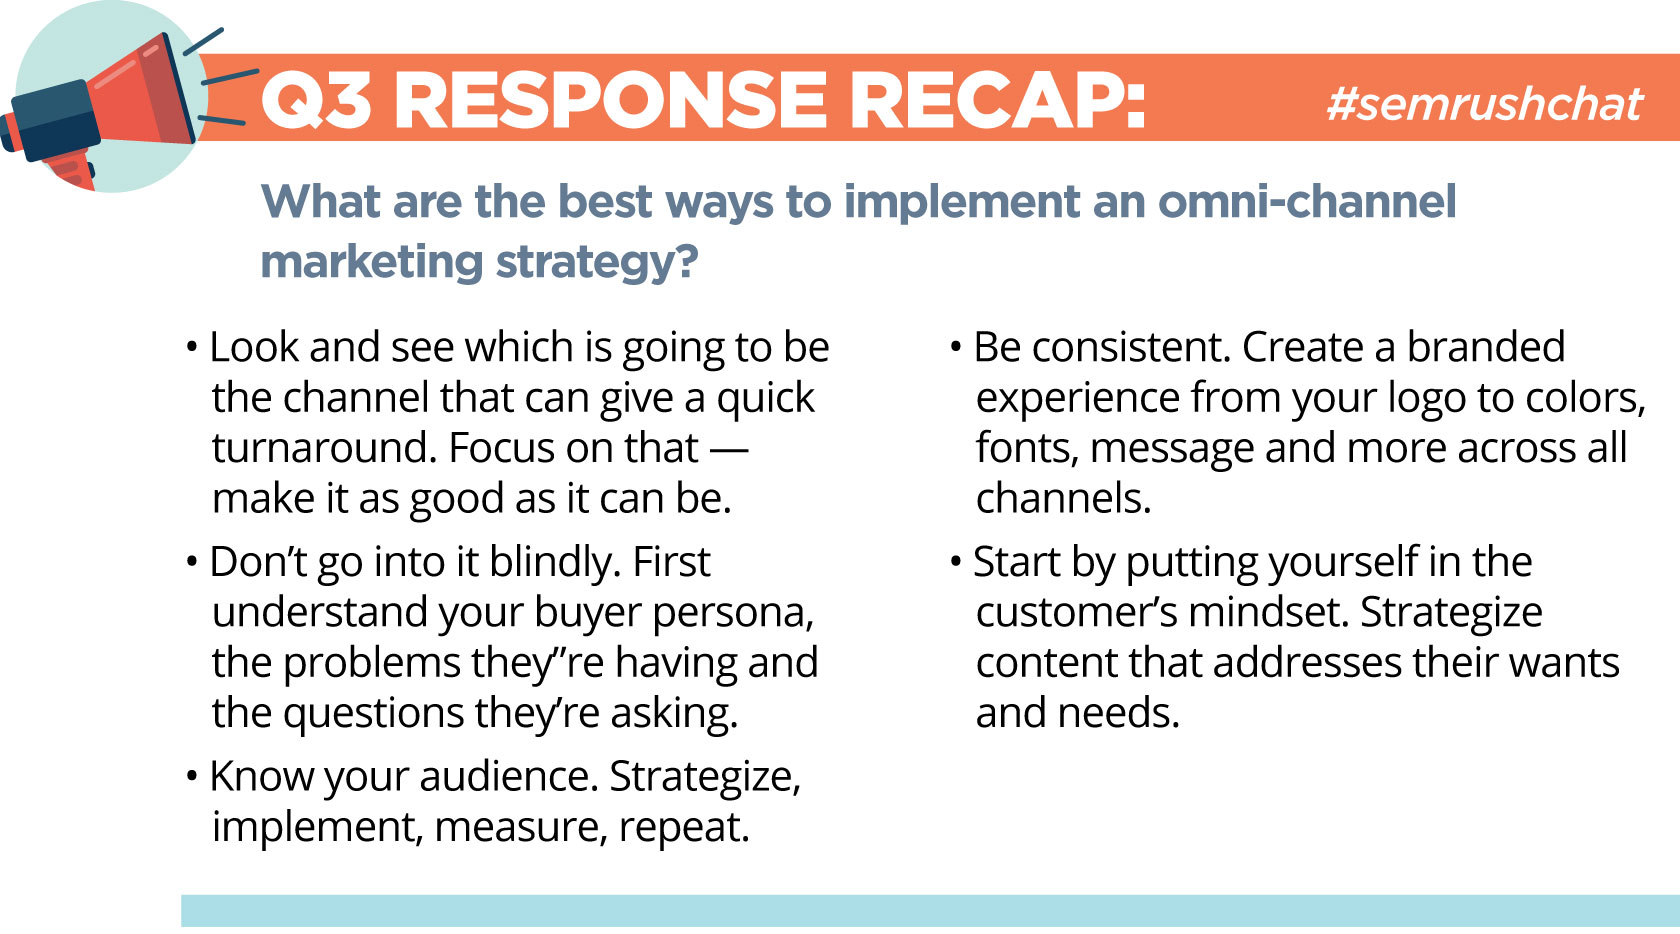 Everything You Need to Know About Omni-Channel Marketing #semrushchat. Image 2